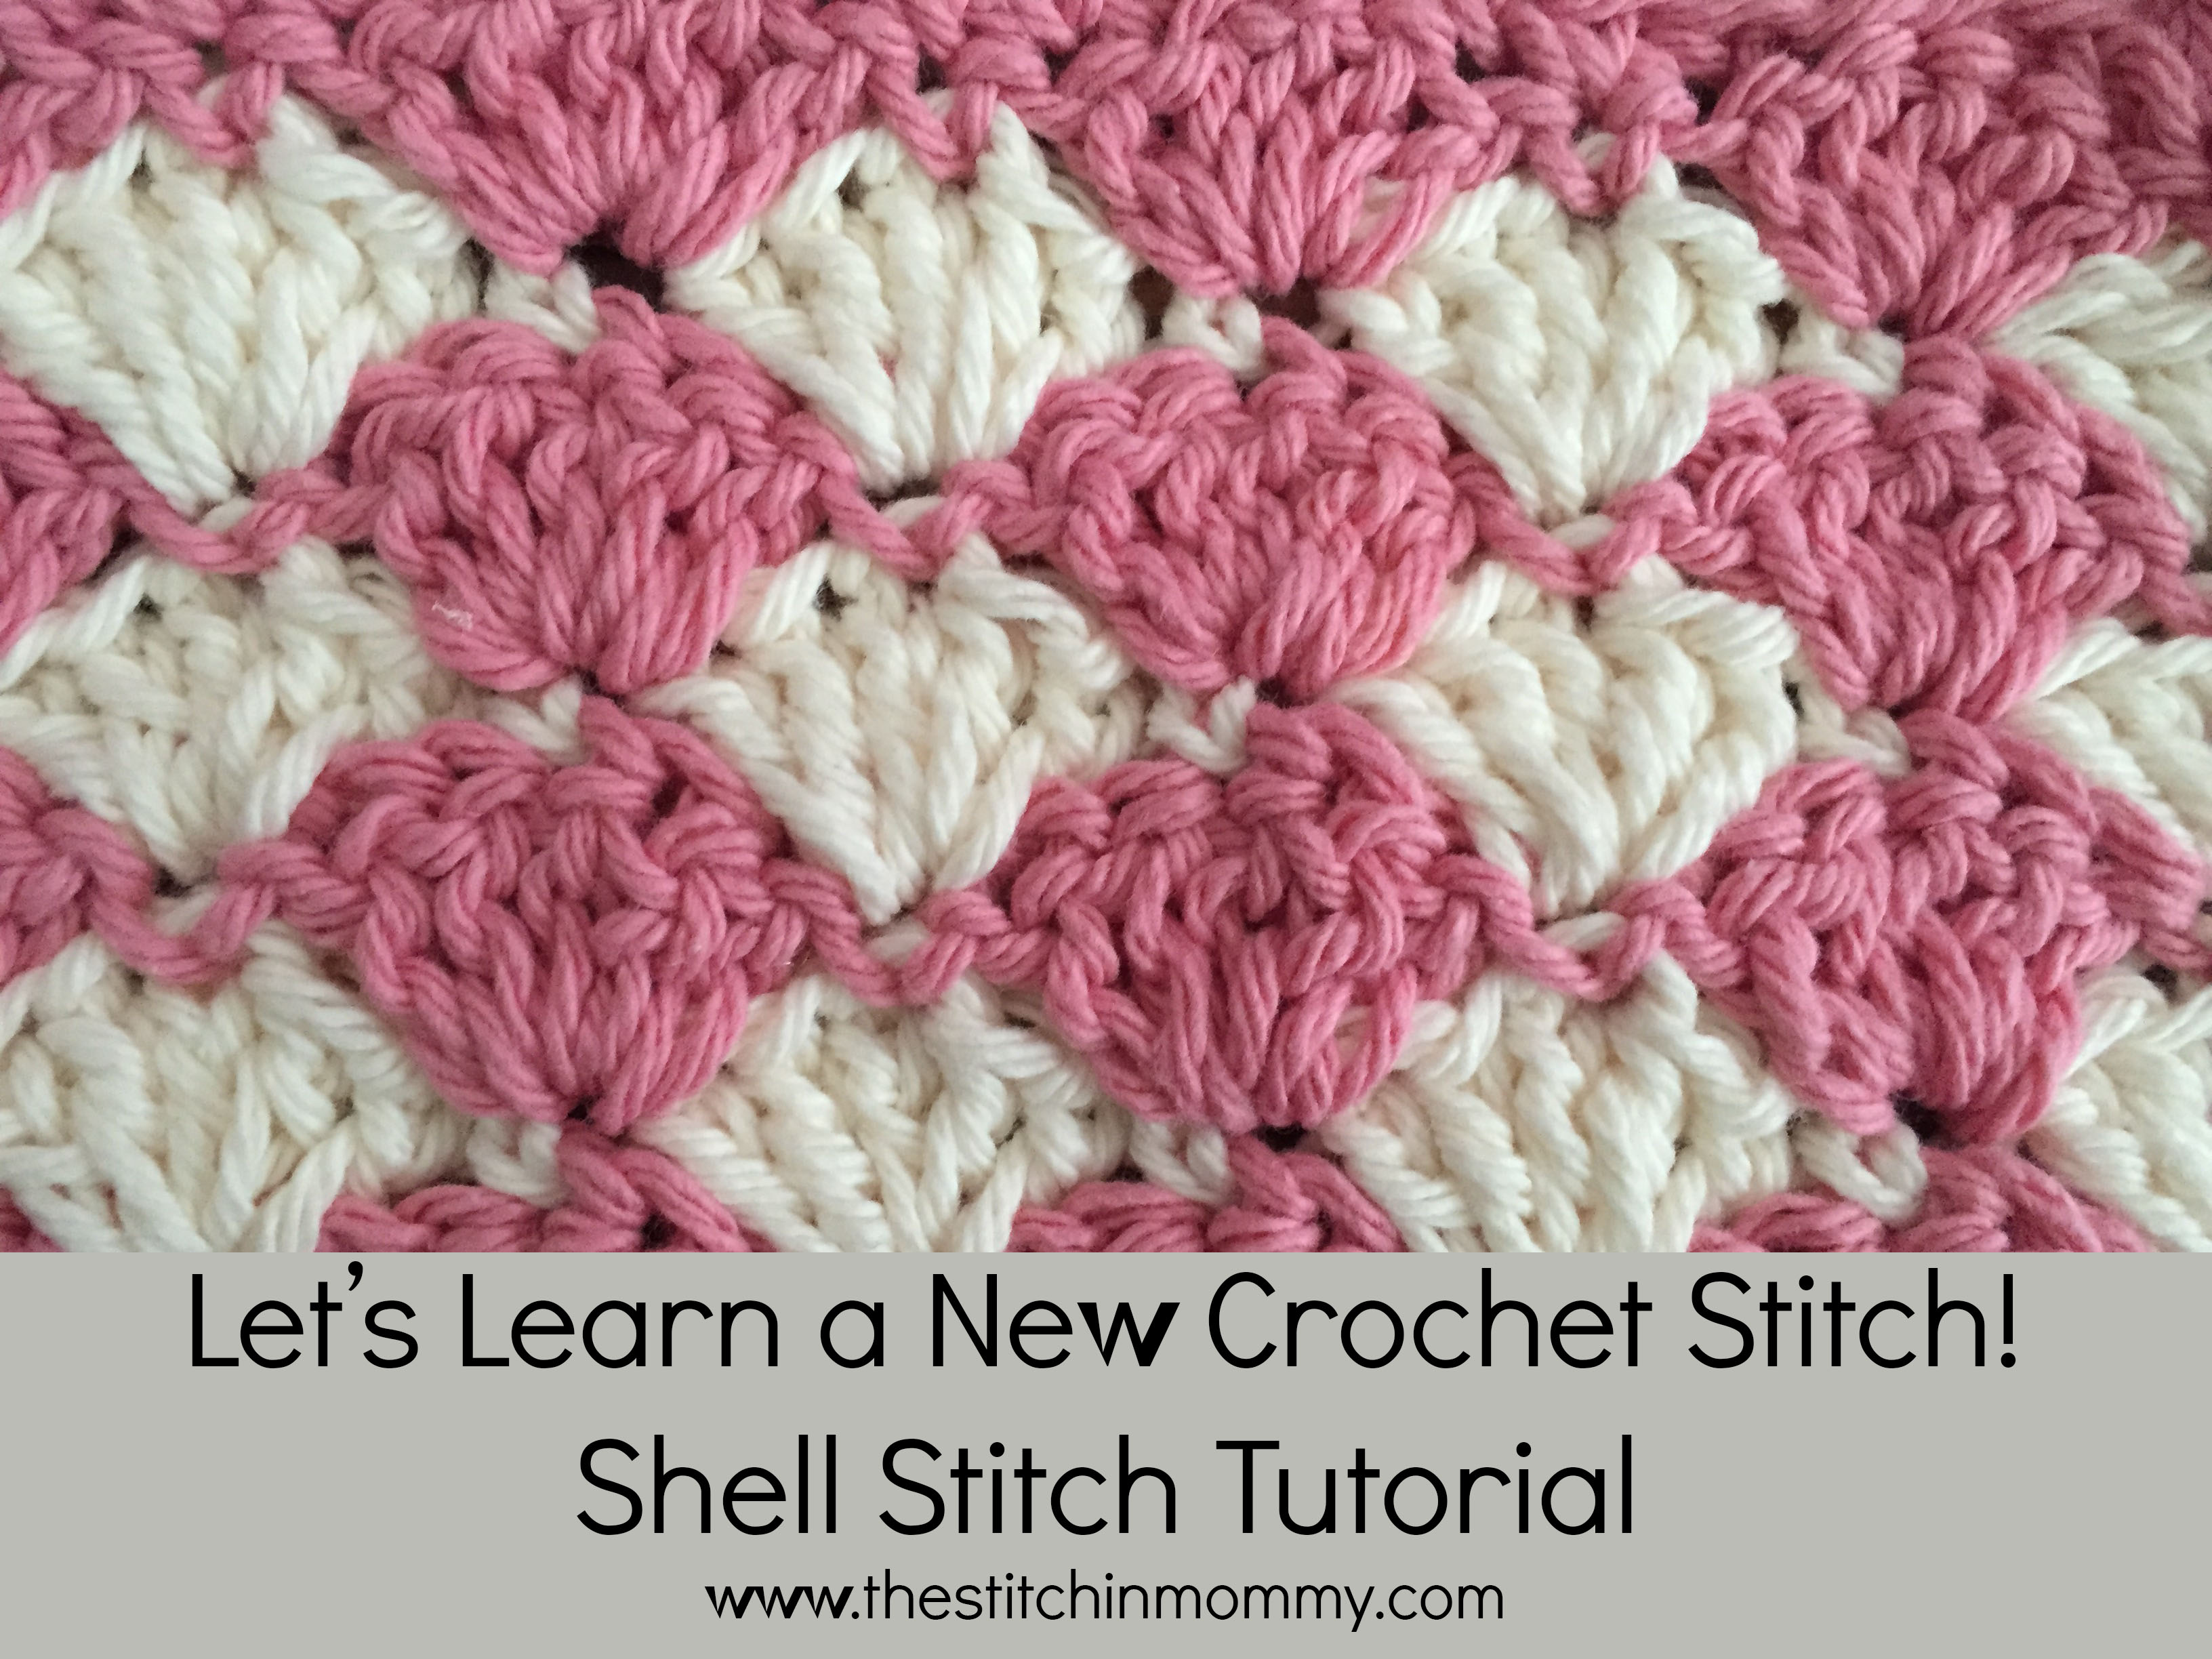 Crochet Stitches Tutorial : Lets Learn a New Crochet Stitch - Shell Stitch Tutorial www ...